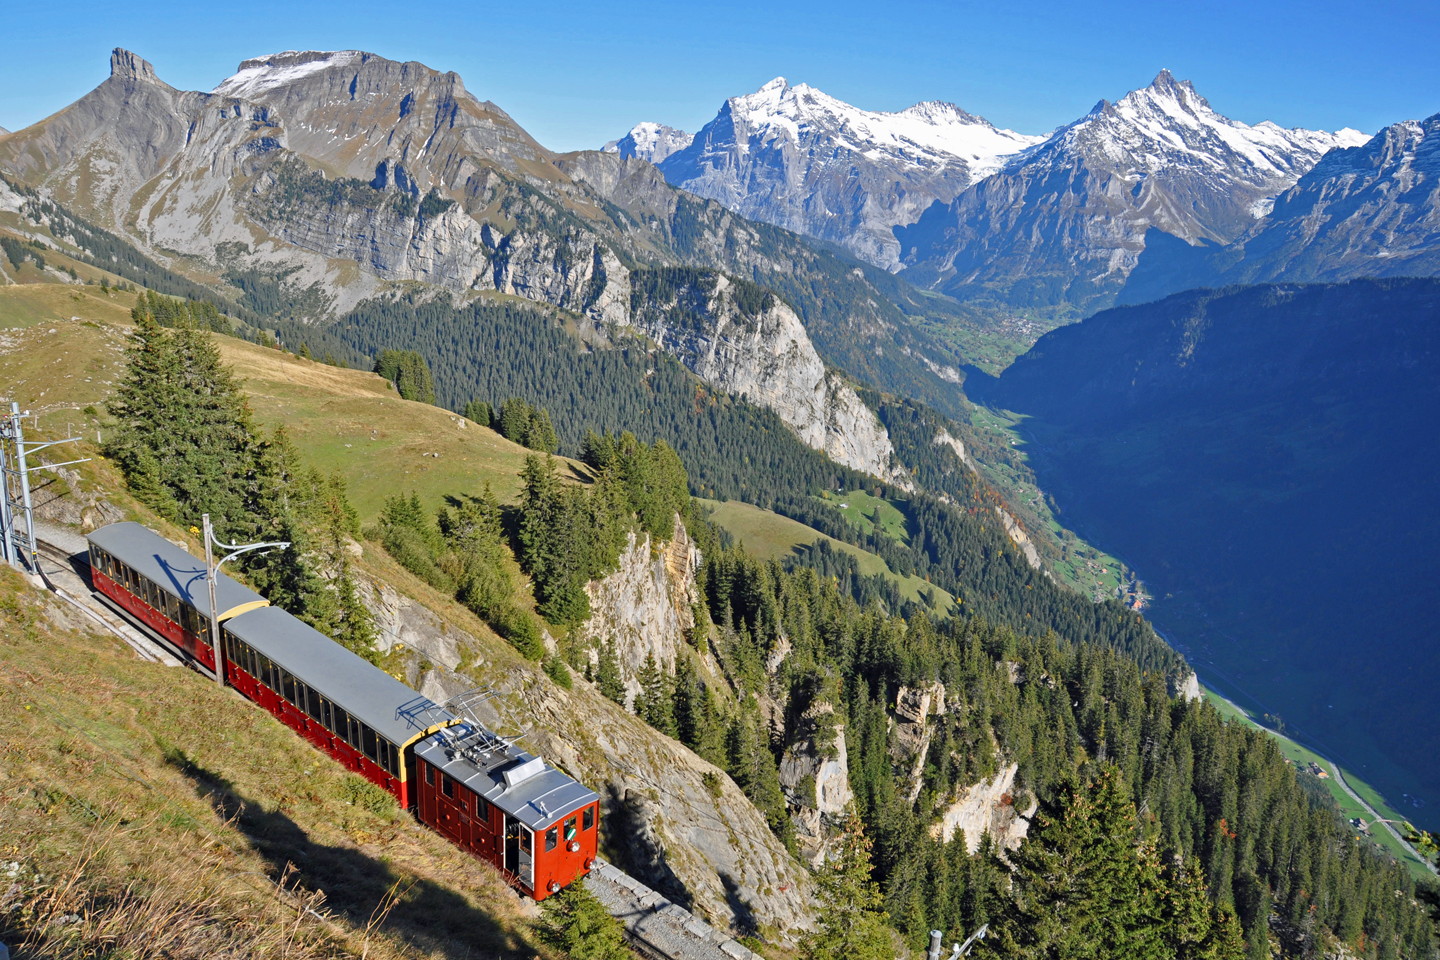 The Schynige Platte railway and the deep Grindelwald valley